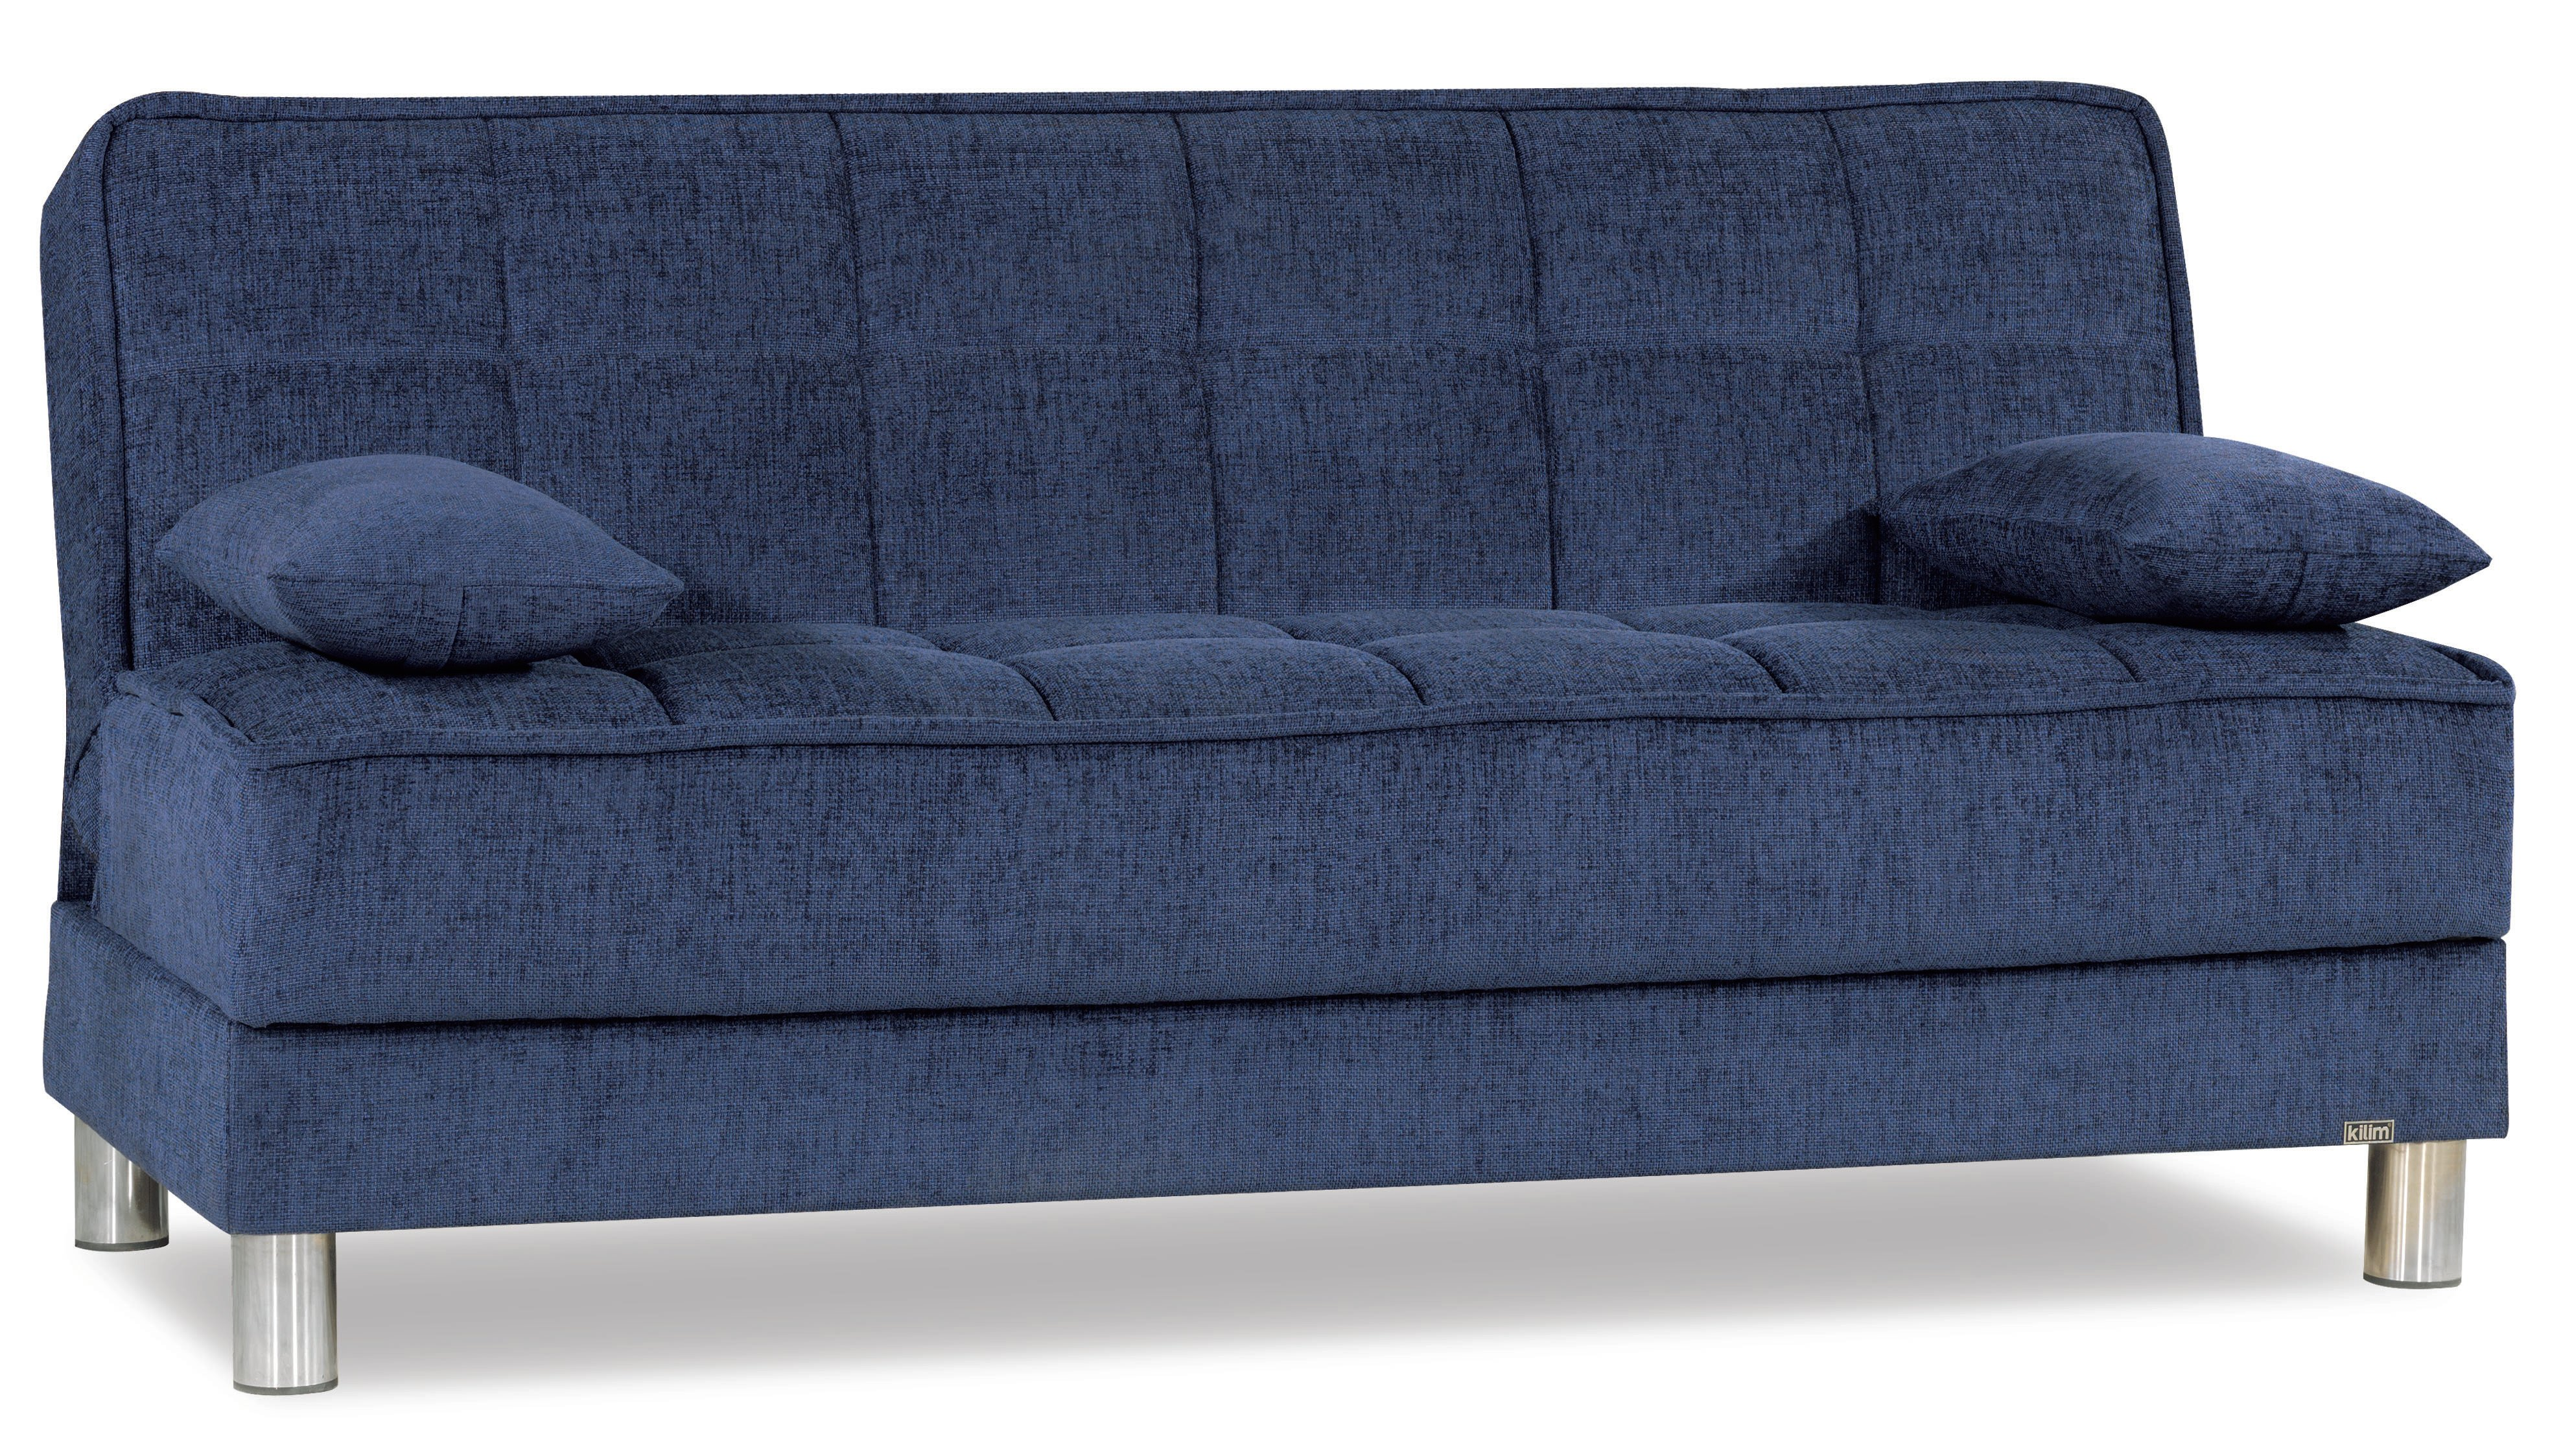 Astounding Smart Fit Navy Blue Convertible Sofa By Casamode Home Interior And Landscaping Dextoversignezvosmurscom